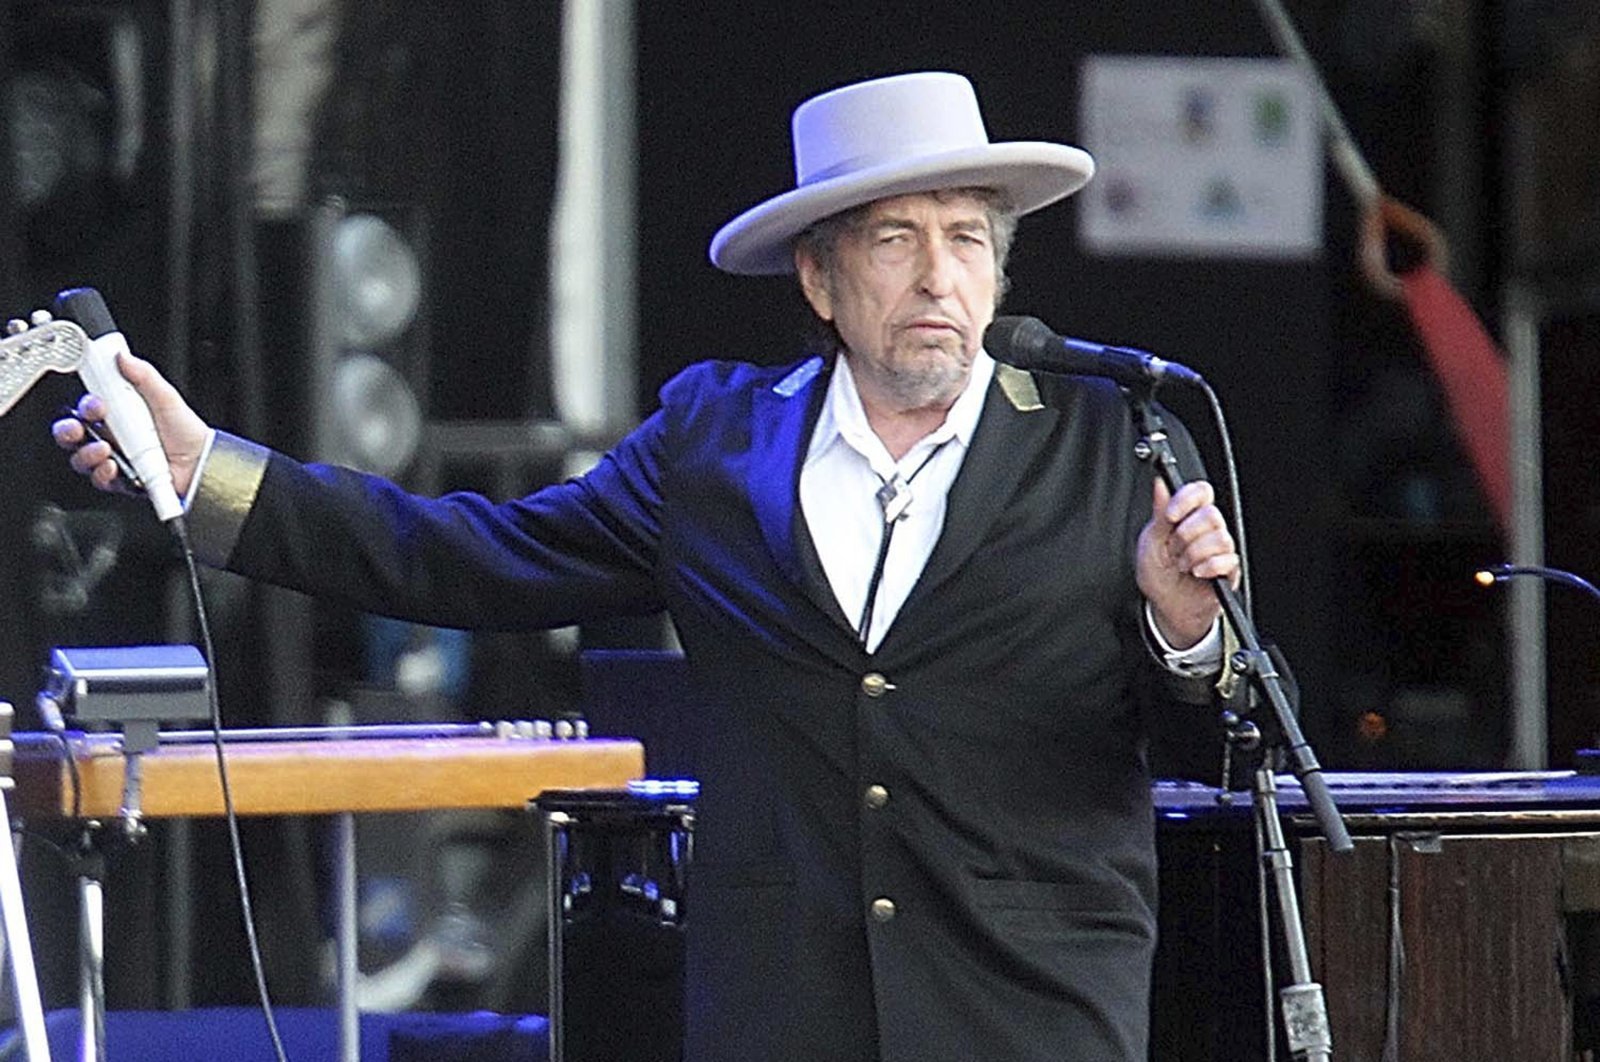 """U.S. singer-songwriter Bob Dylan performing onstage at """"Les Vieilles Charrues"""" Festival in Carhaix, western France on July 22, 2012. (AP Photo)"""